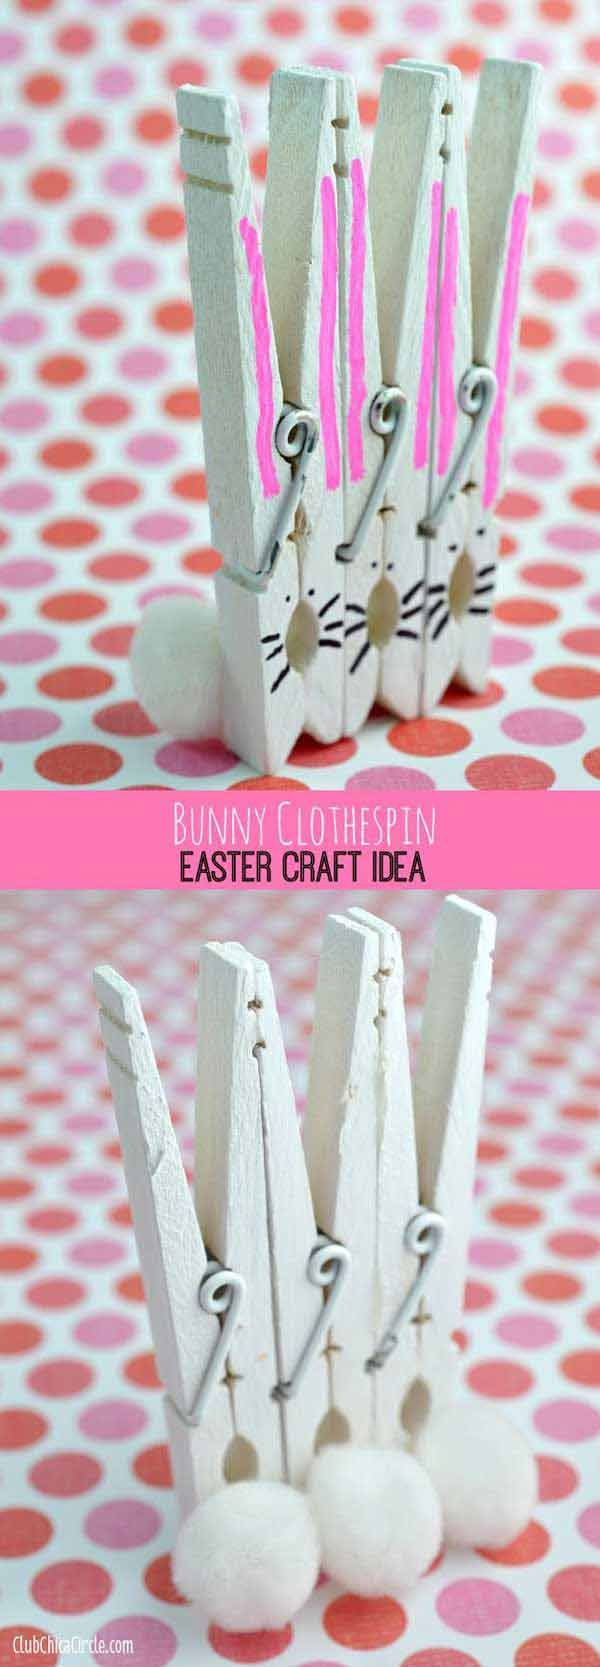 Wooden clothes pegs have a variety of other crafty uses, not only for hanging the wash. They can be used for a variety of cute and creative stuff, such as clothespin photo frame, reindeer ornament,placecard holder, clothespin mirror and so on. Most of these wooden pegs crafts are cheap and easy to make. Source Source […]